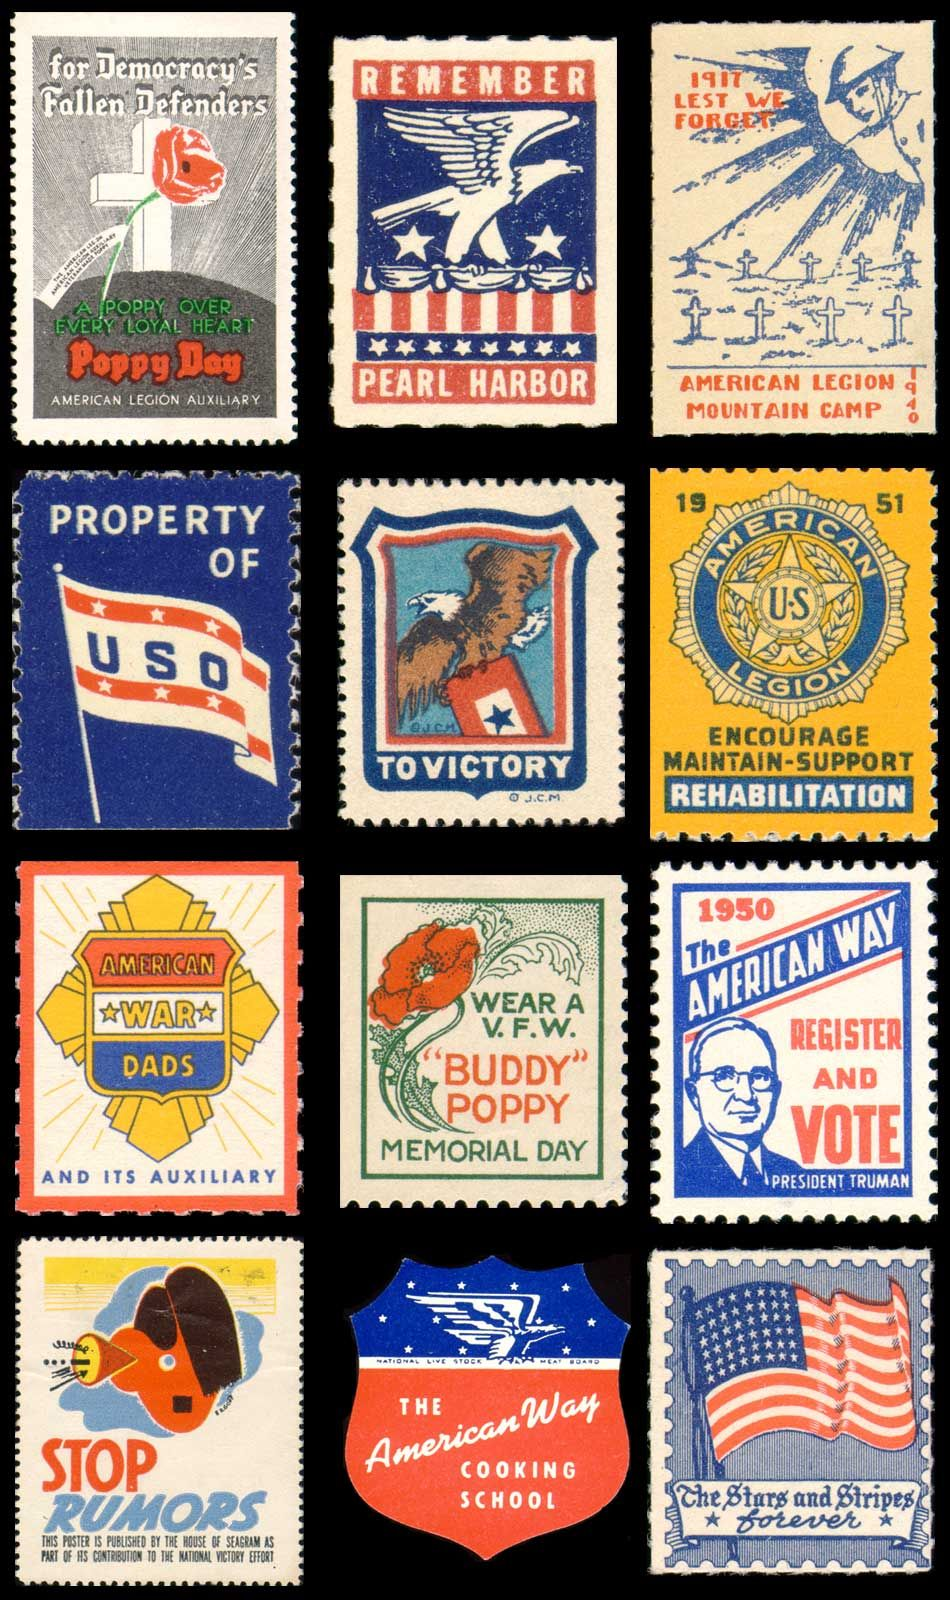 Vintage Americana Post Stamps Were Not A Big Thing Back Then But Now Some People Make Collections Of Them